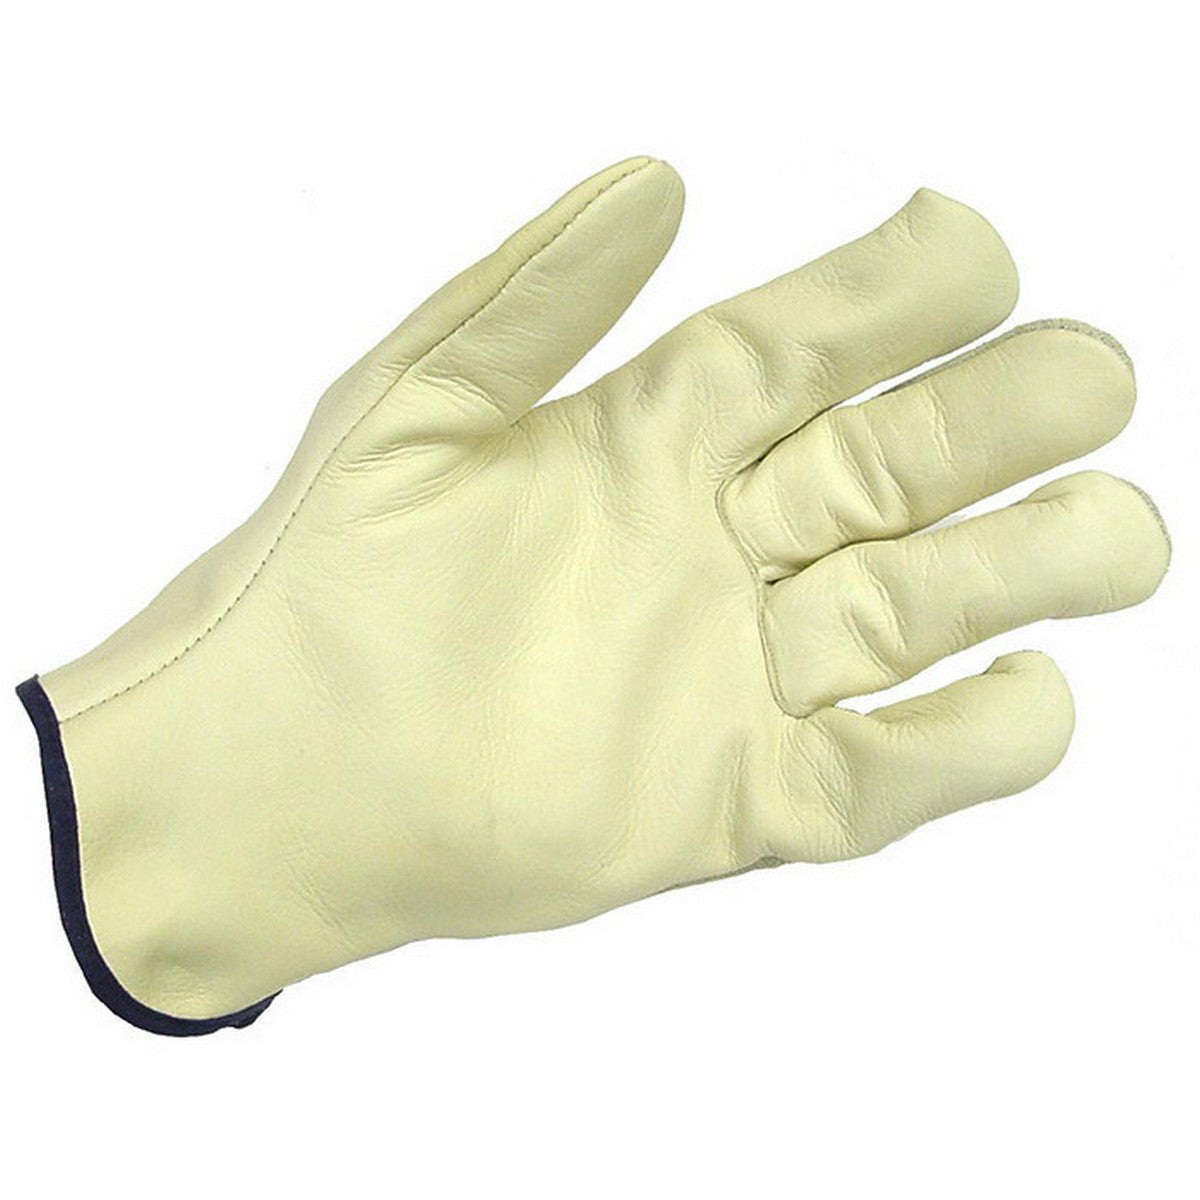 Image of CRE Premium Riggers Gloves